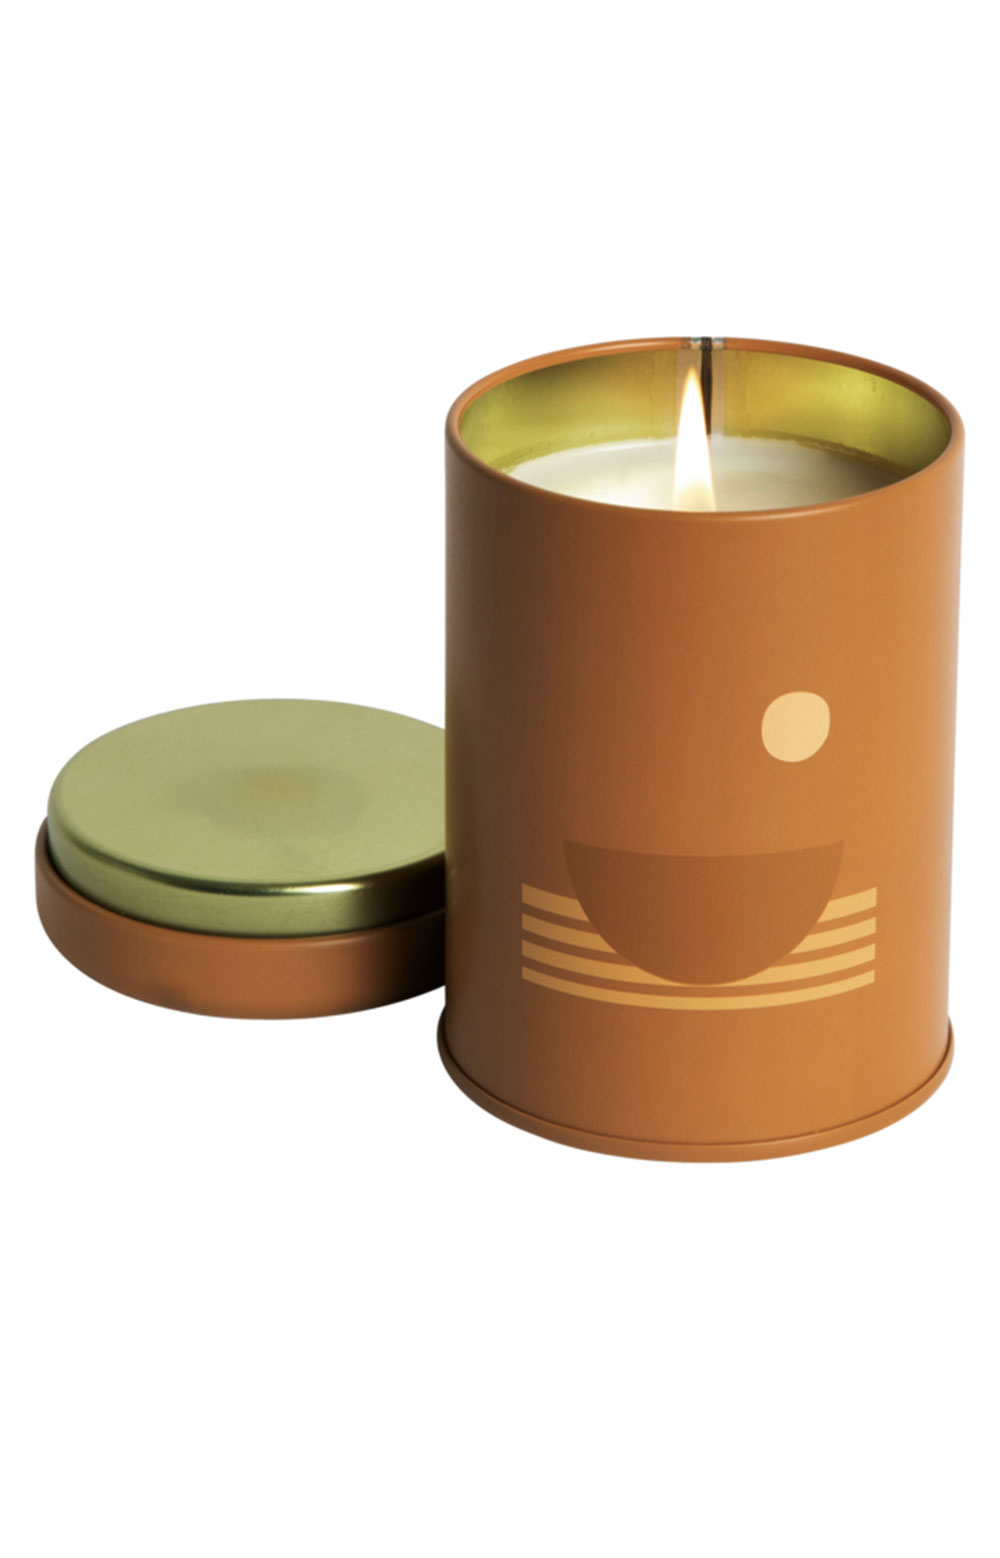 Swell - 10 oz Sunset Soy Candle